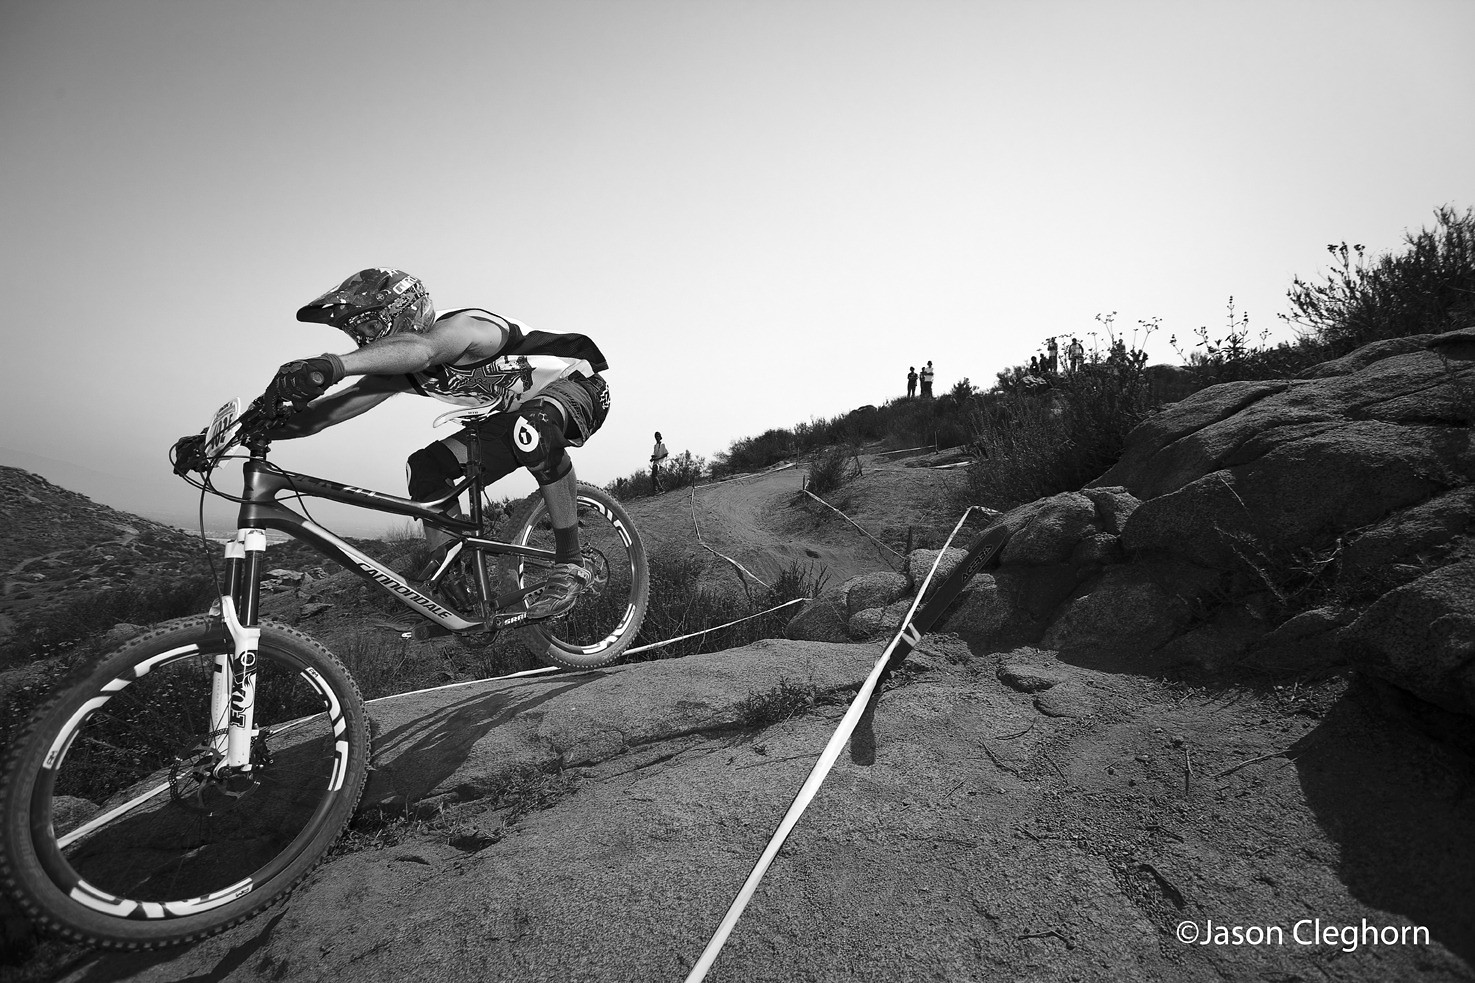 Stayin low - Cleghorn Photography - Mountain Biking Pictures - Vital MTB